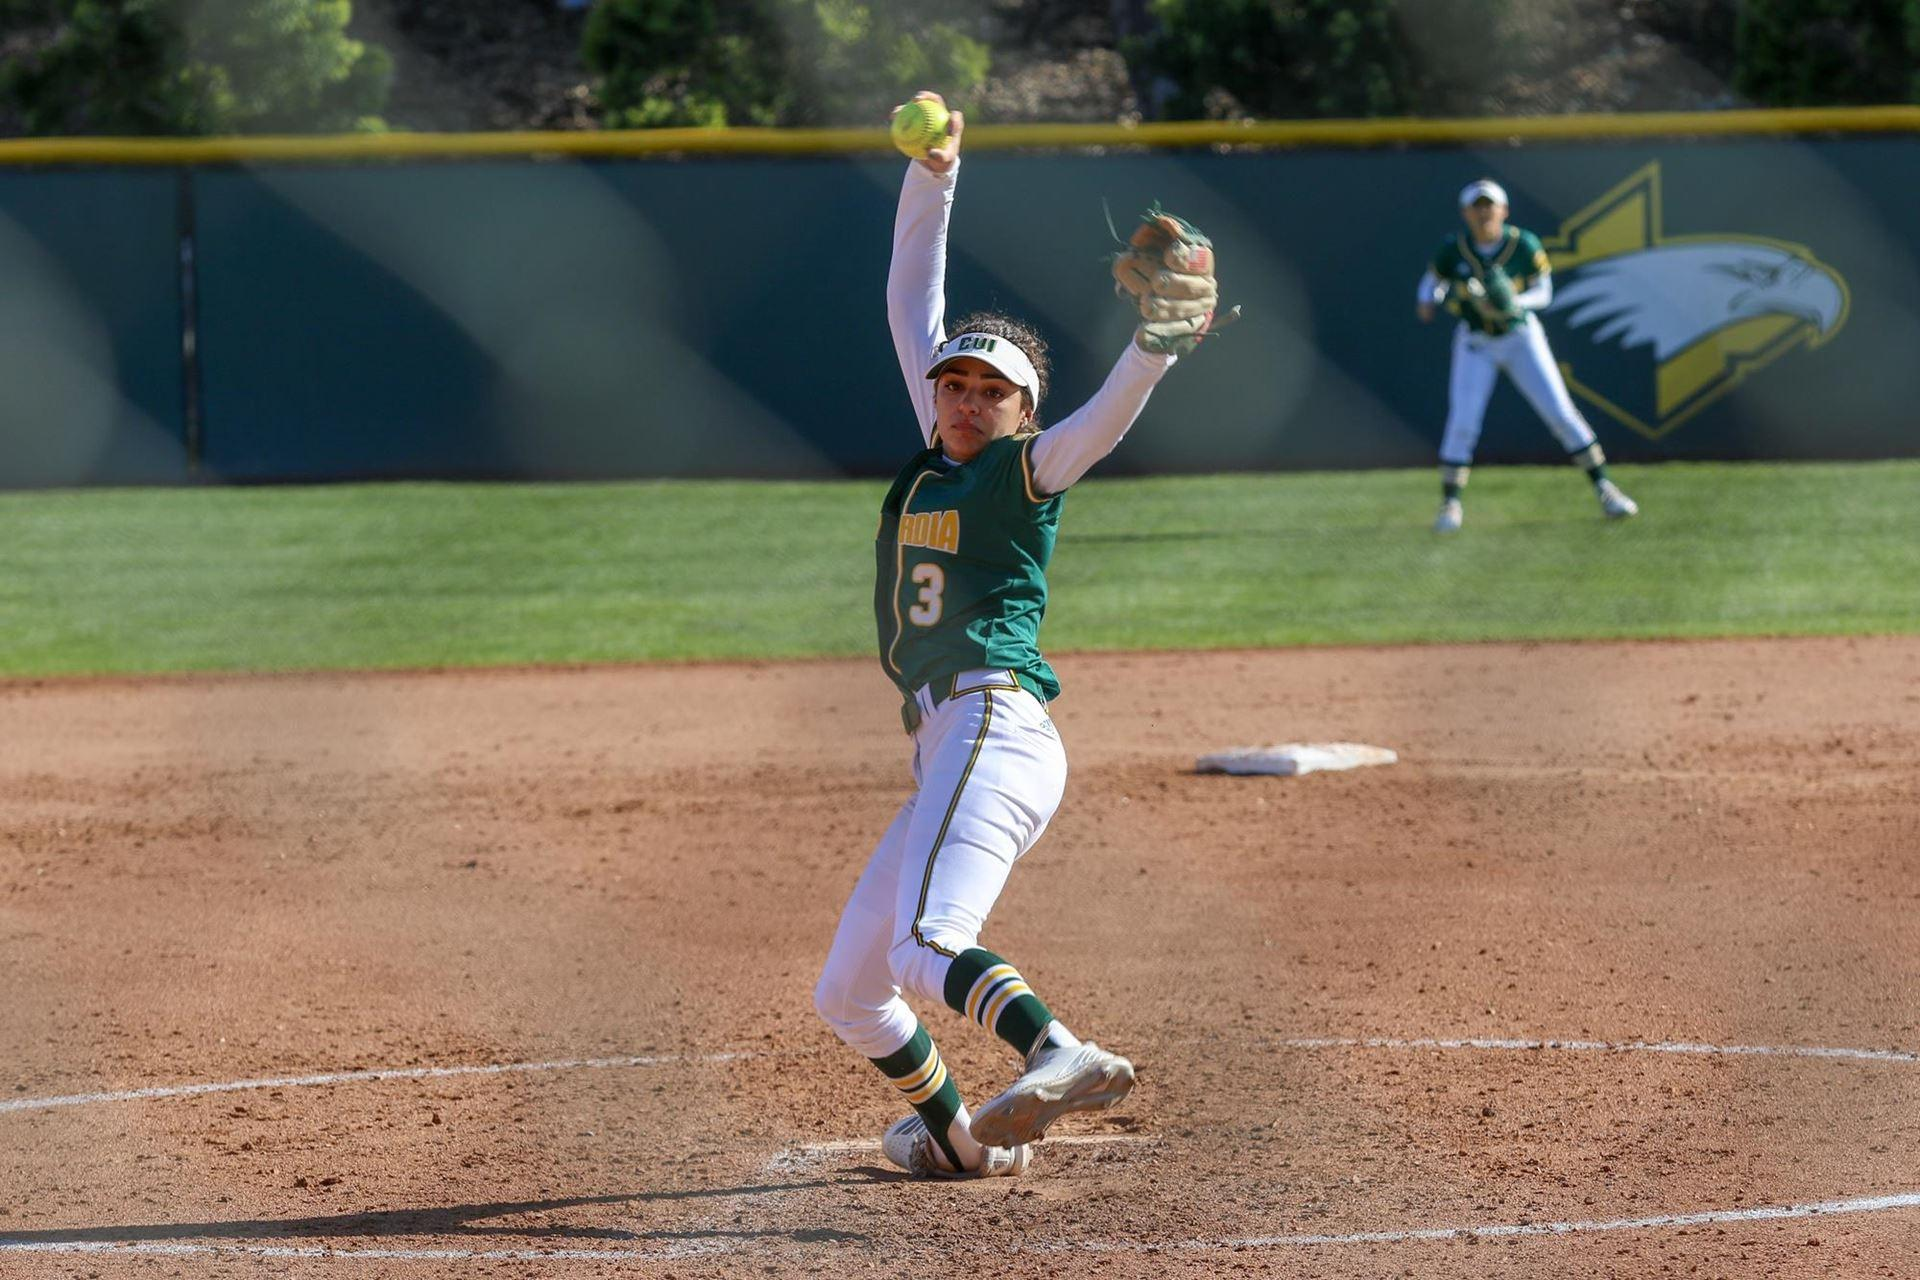 Concordia Irvine is the new No. 1 in DII softball.